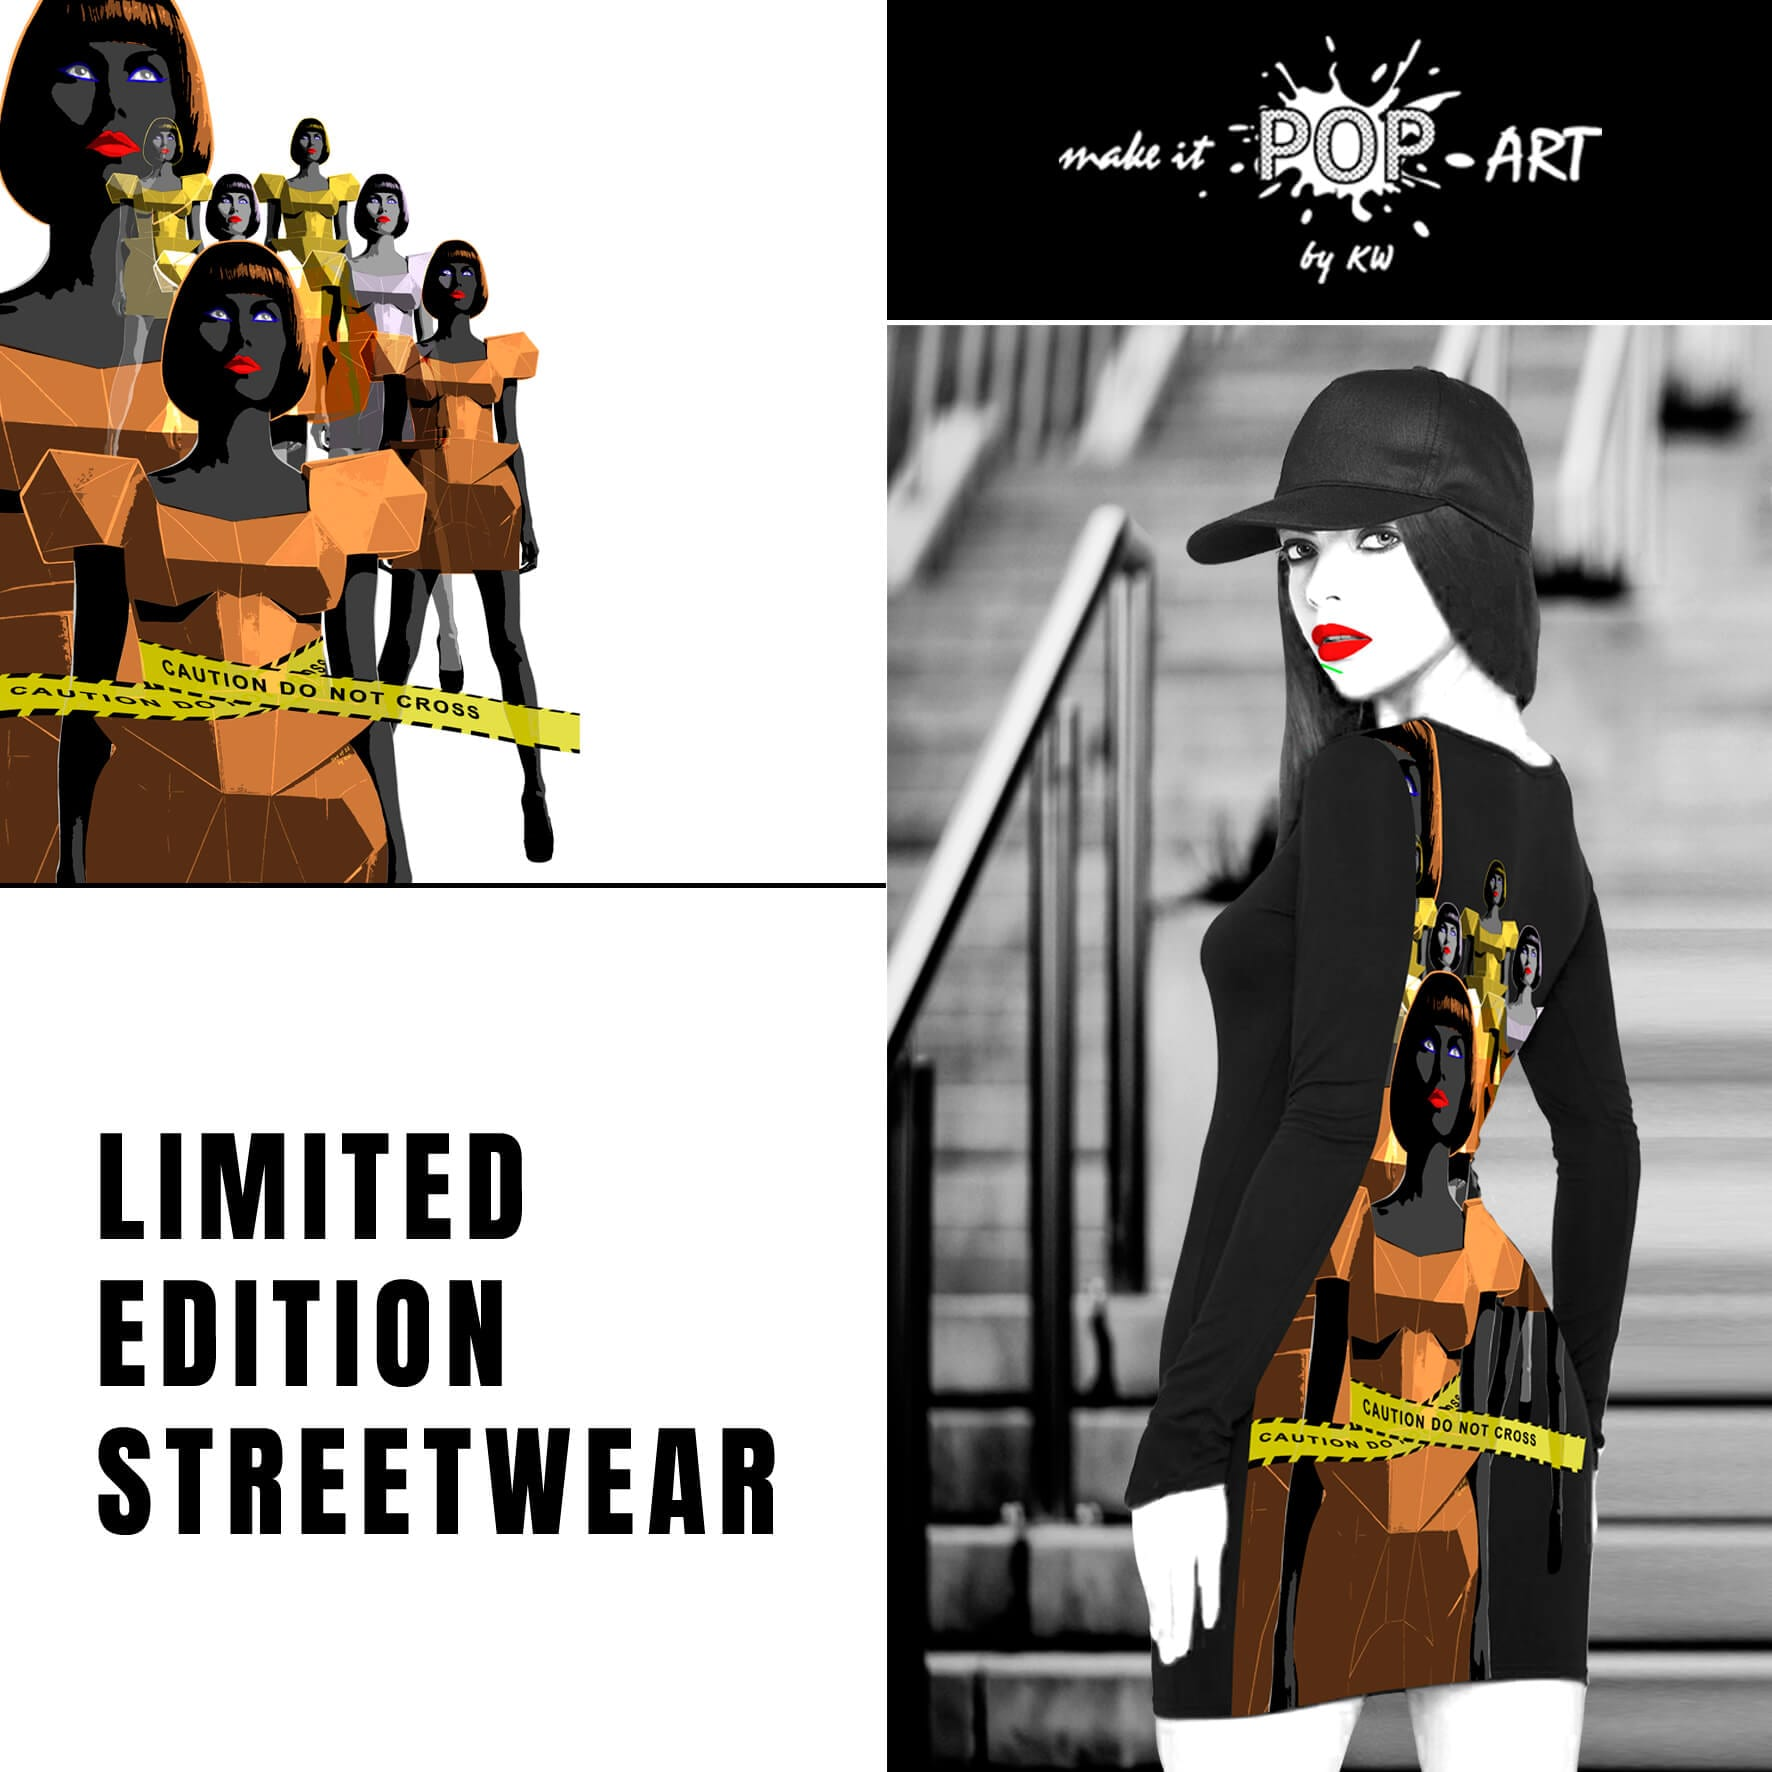 make it pop art limited edition streetwear Fitted Long Sleeve Dress Caution